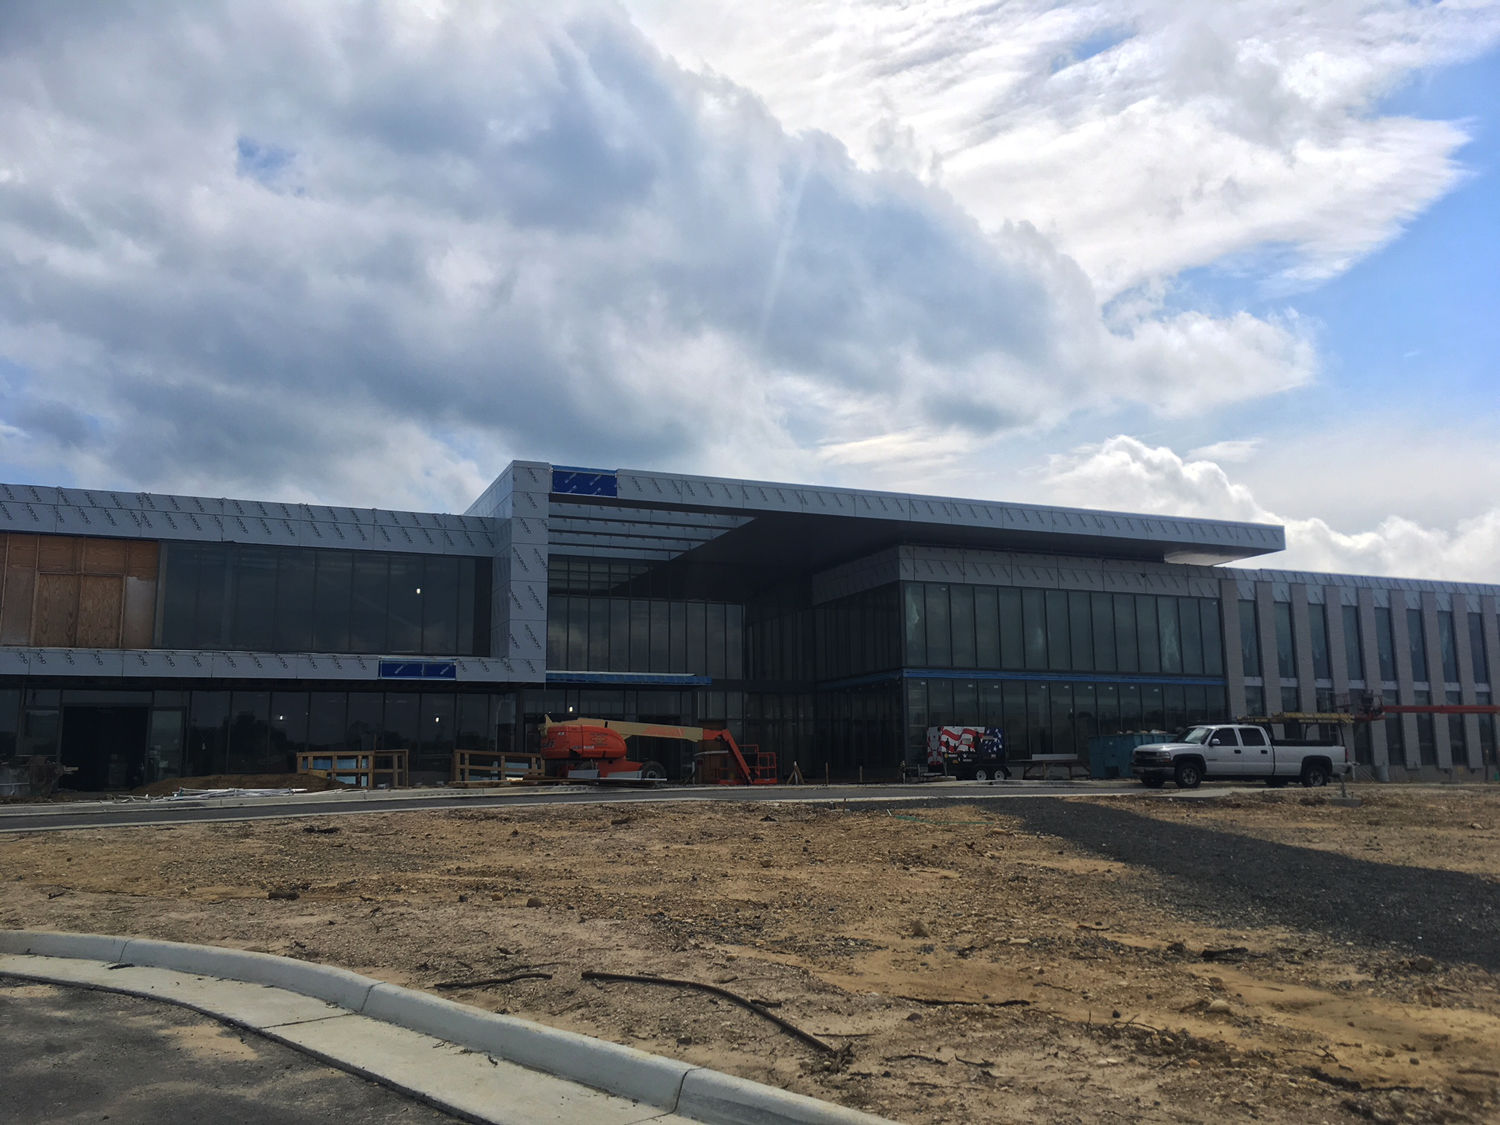 The St. James is a 450,000 square foot sports and wellness center opening in Fairfax County in September. (WTOP/Noah Frank)